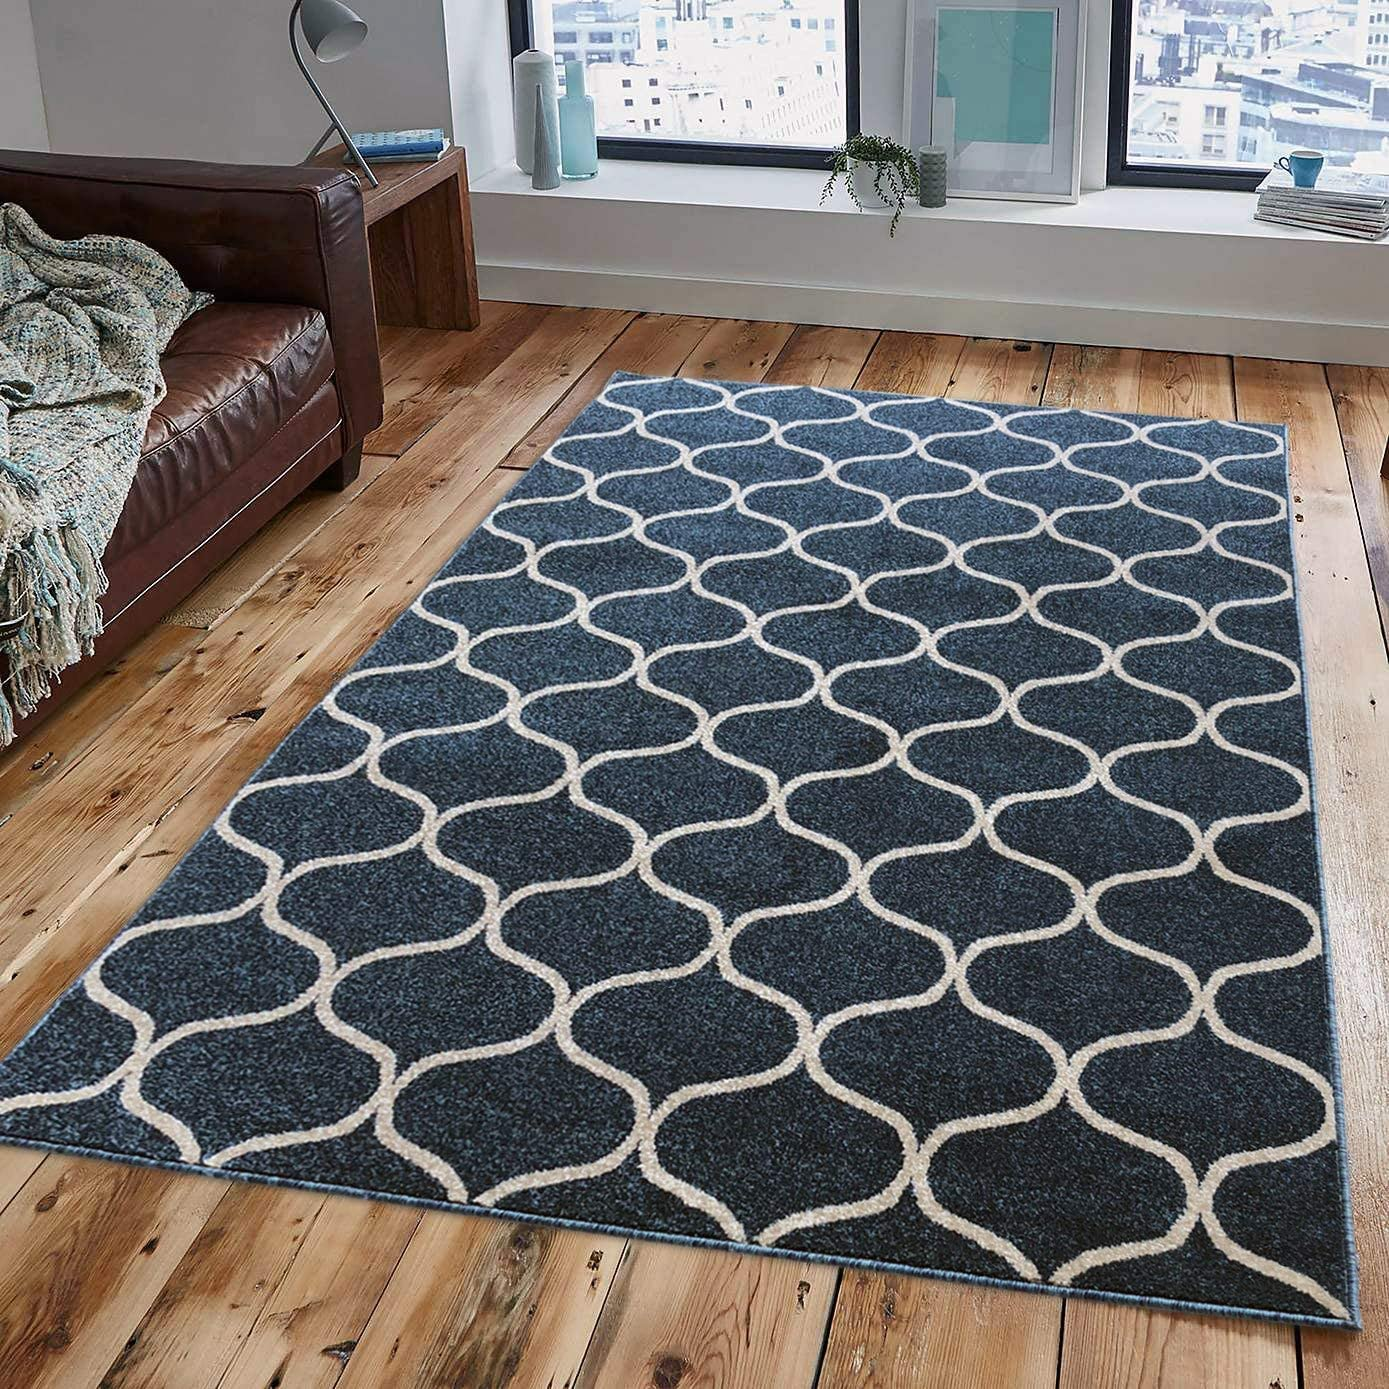 Area Rugs, Pyramid Home Decor Area Rugs, COSI Collection, Blue Area Rugs for Living Room, Kitchen, Bedroom Area Rugs, Carpet 5×7 Area Rugs Cleareance